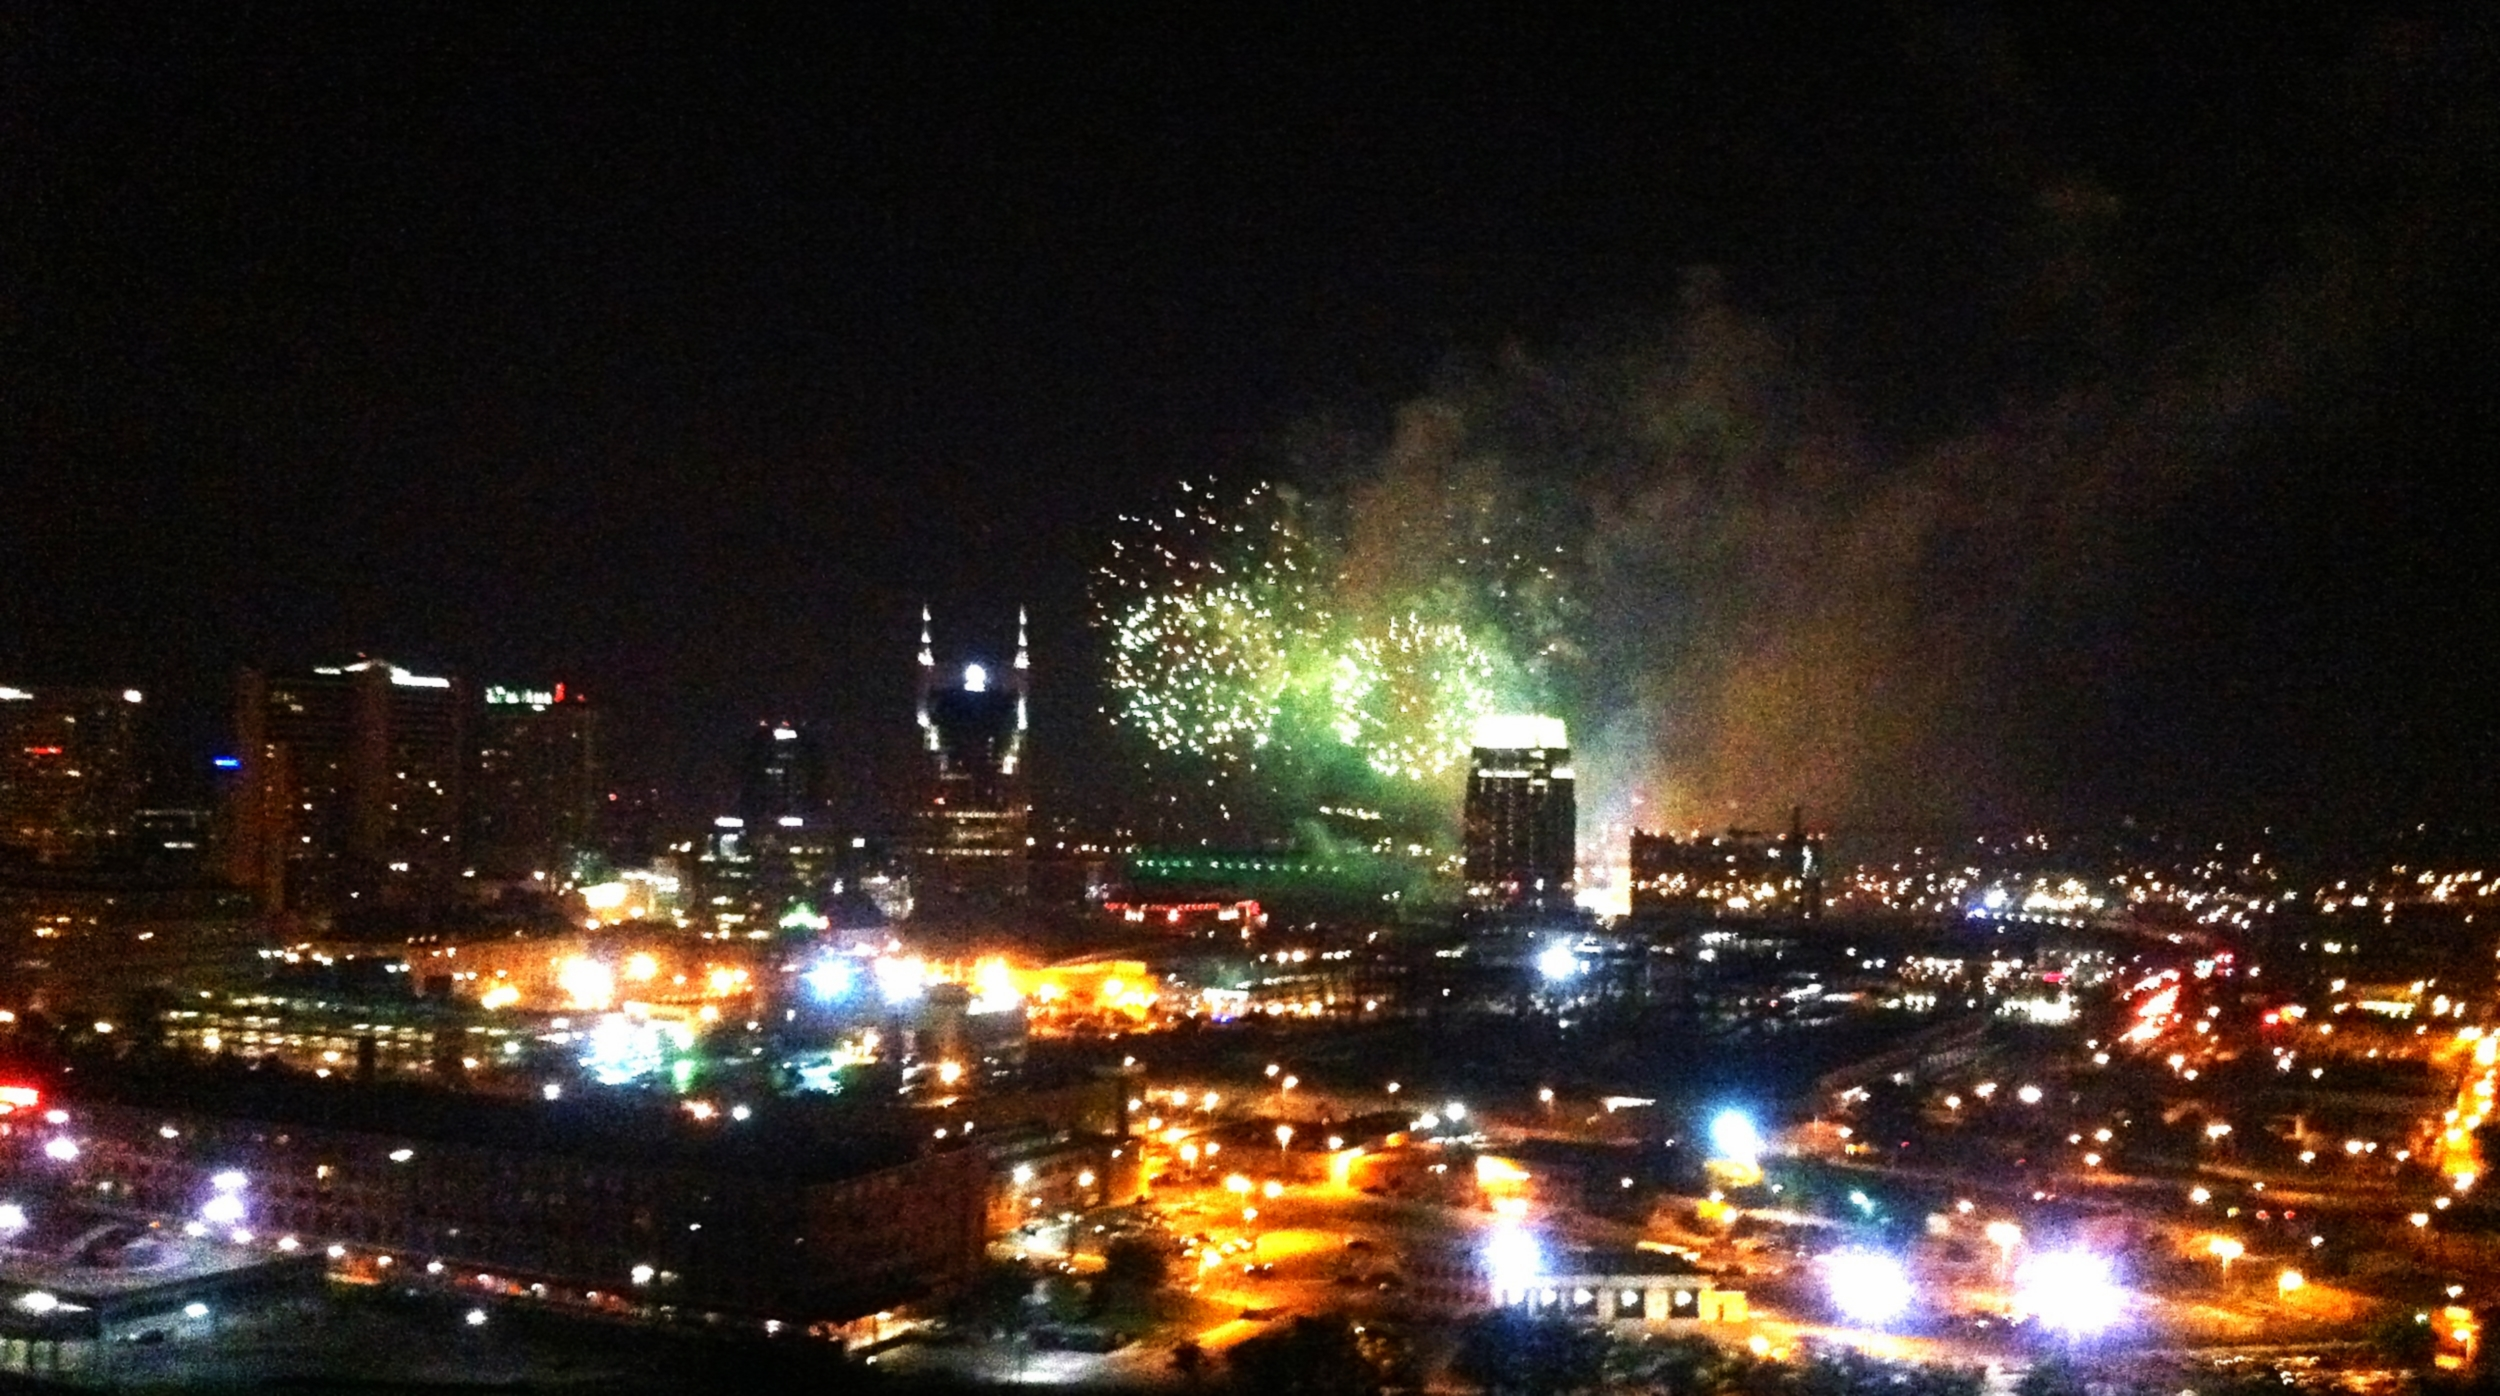 HighNoteGiftsNashvilleSkylineFireworks4thofJuly